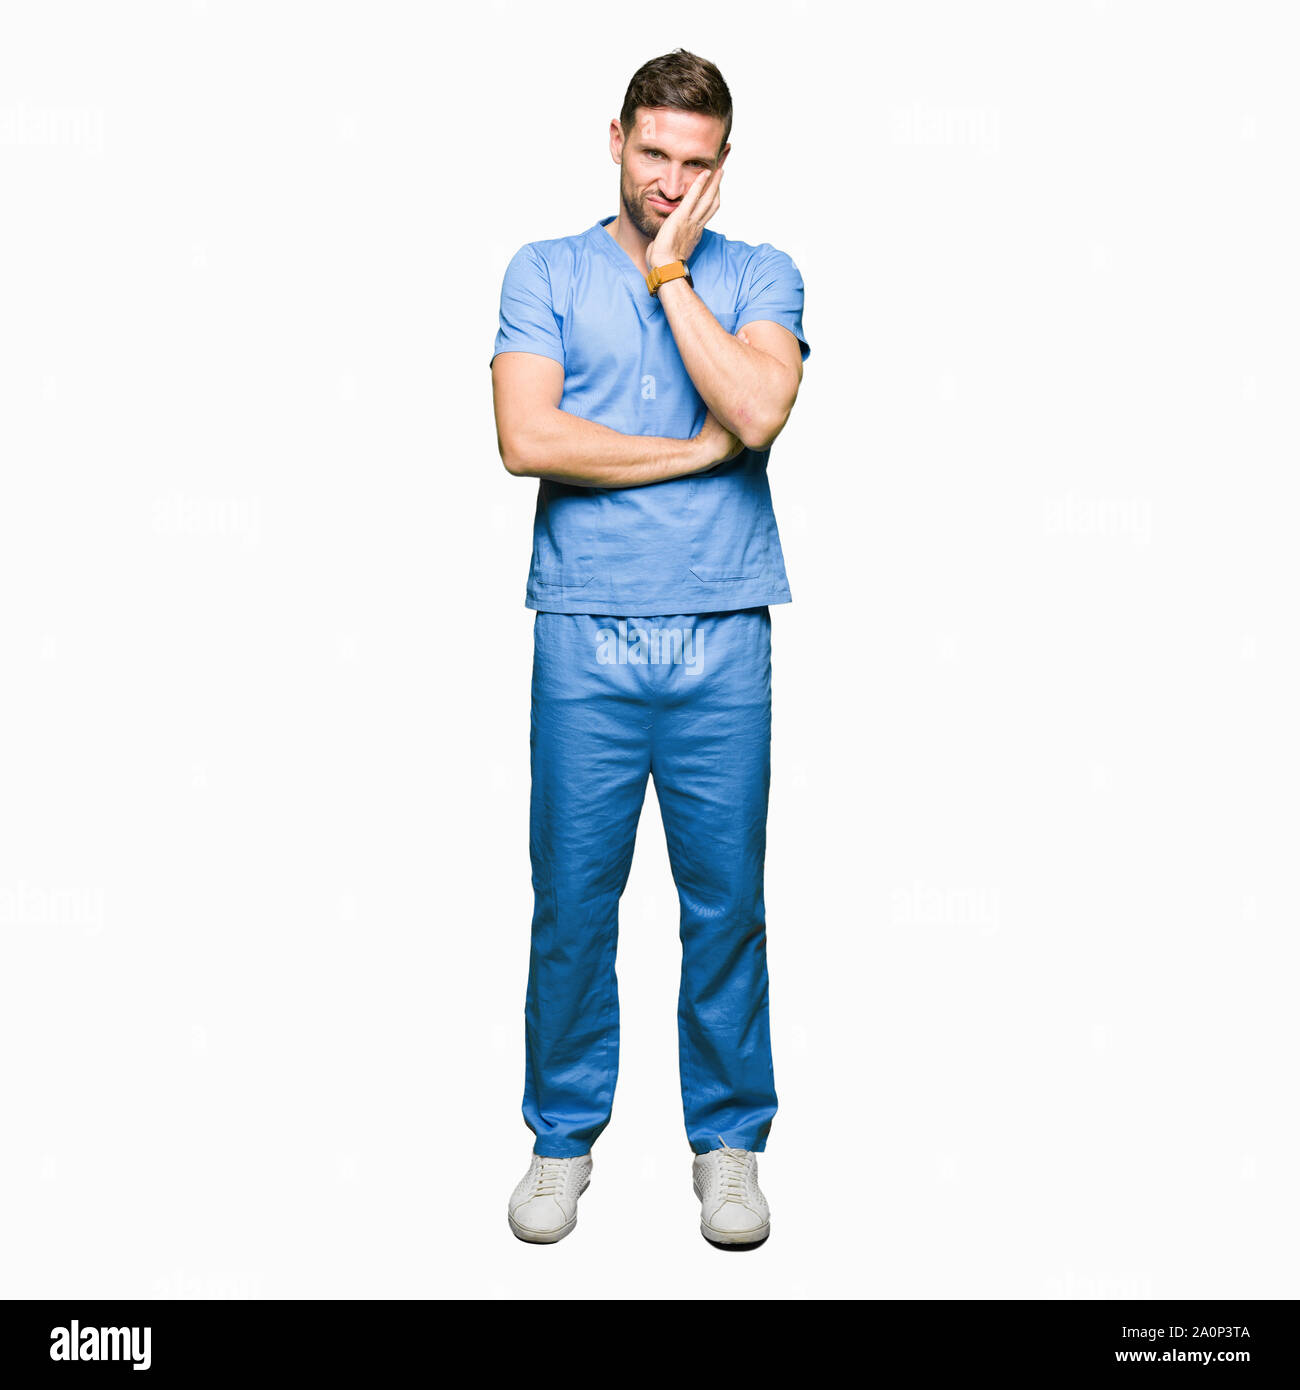 Handsome doctor man wearing medical uniform over isolated background thinking looking tired and bored with depression problems with crossed arms. Stock Photo